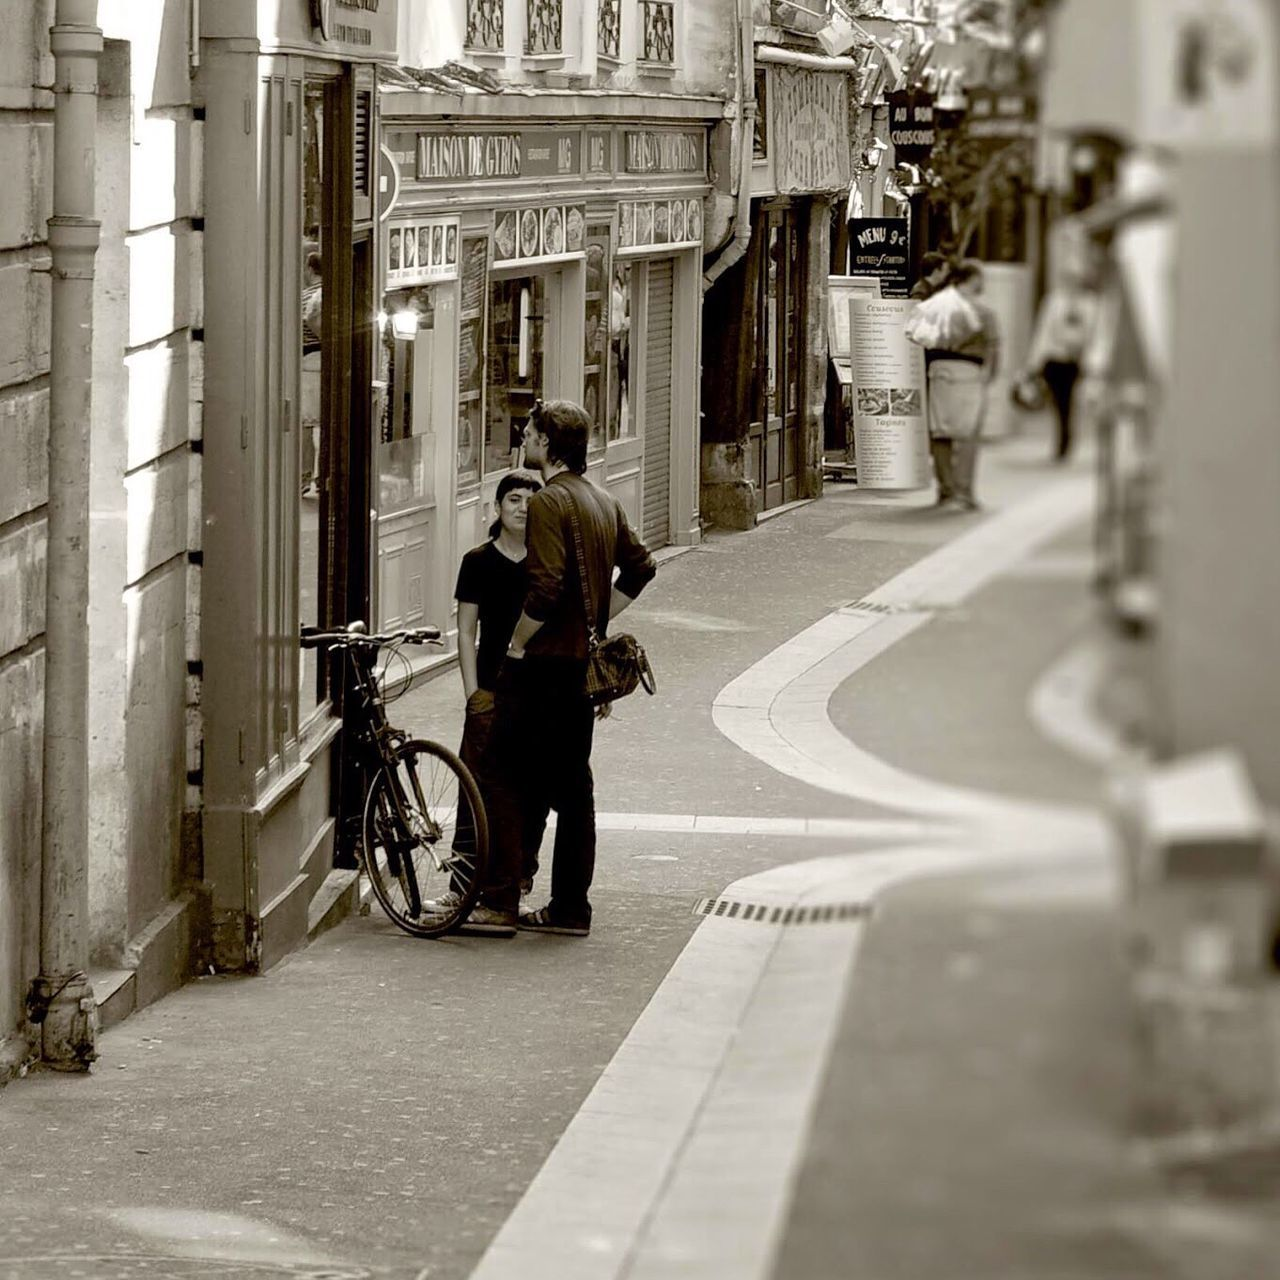 bicycle, real people, architecture, transportation, walking, built structure, men, land vehicle, mode of transport, building exterior, day, full length, lifestyles, road, outdoors, city, women, adult, people